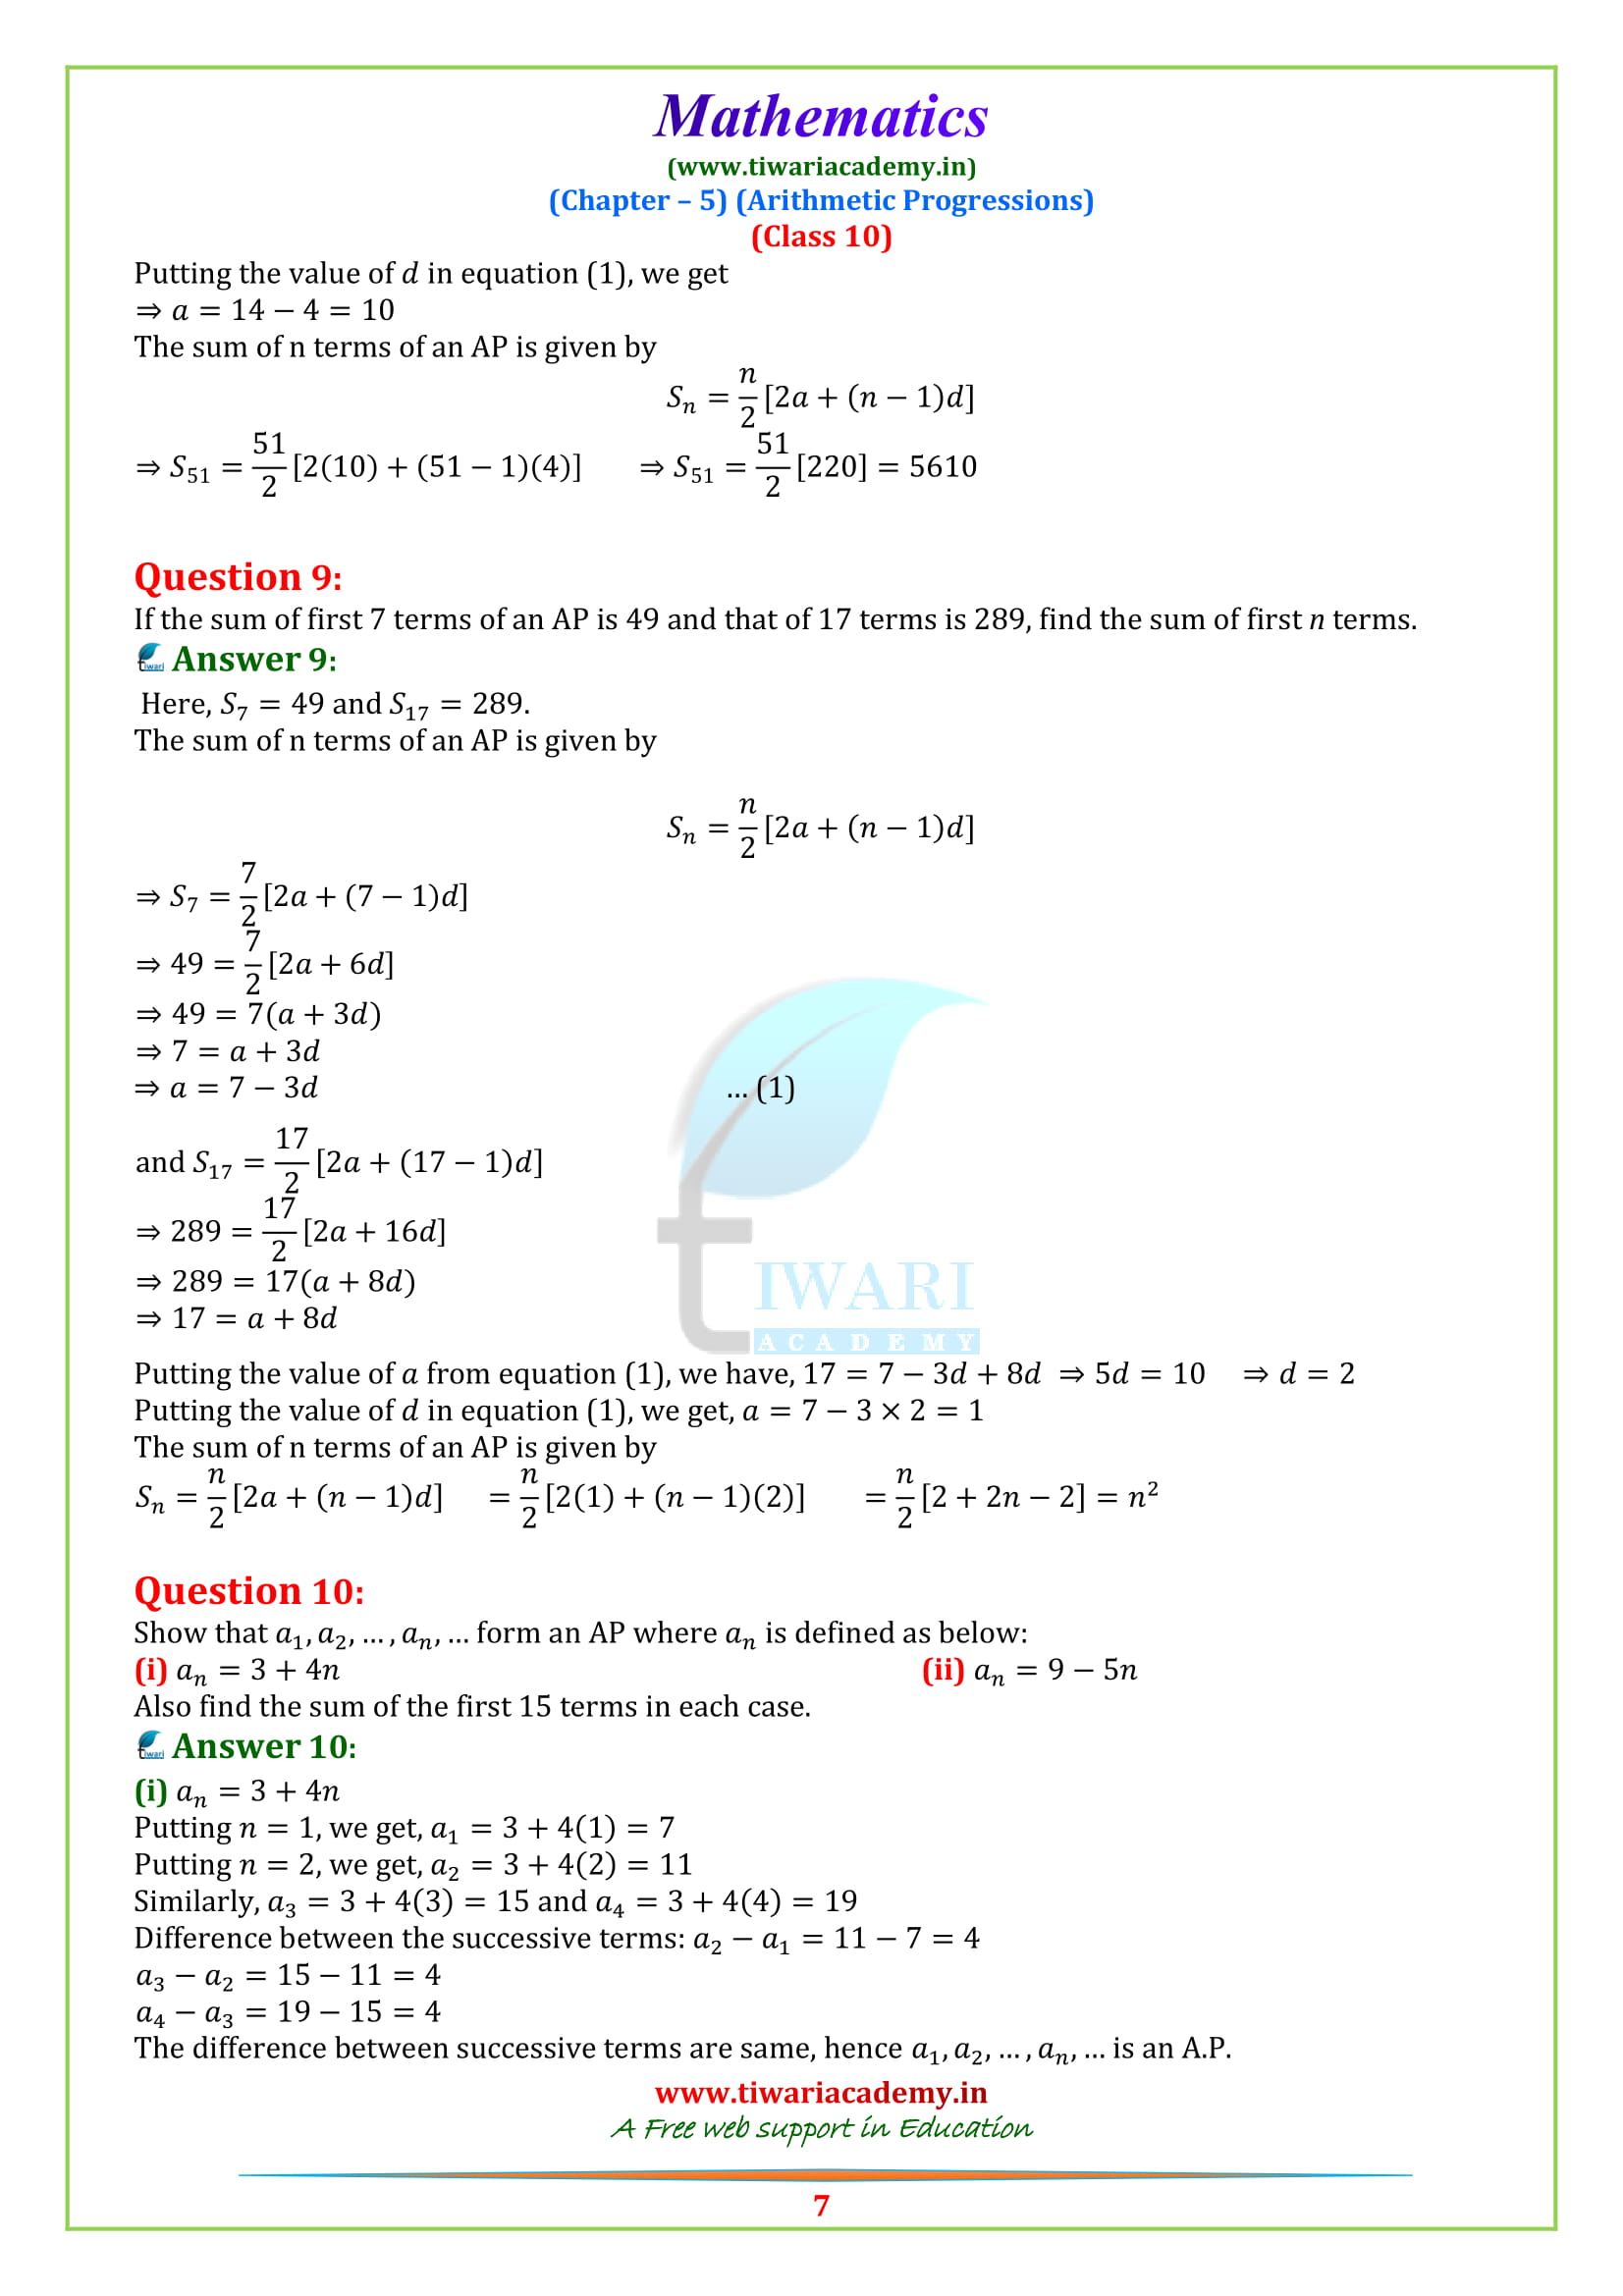 NCERT Sols for class 10 Maths exercise 5.3 all questions in english